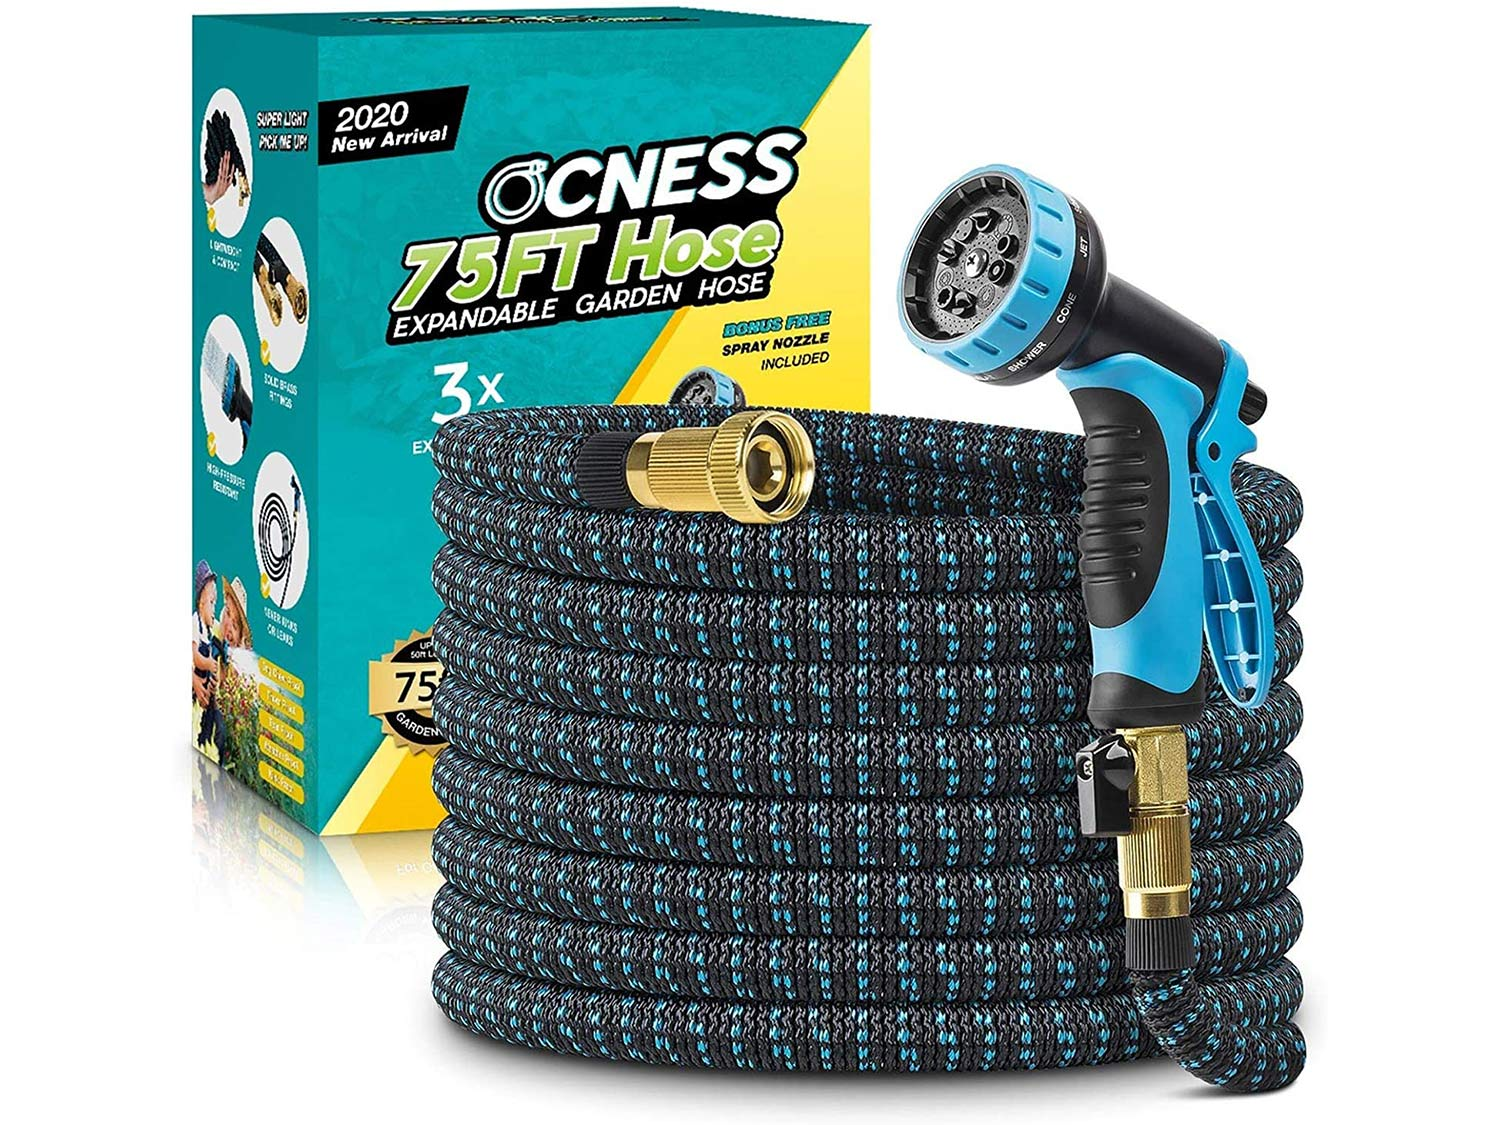 OCNESS Expandable Garden Hose, 75ft Lightweight Flexible Water Hose with 9 Function Spray Nozzle, 3/4